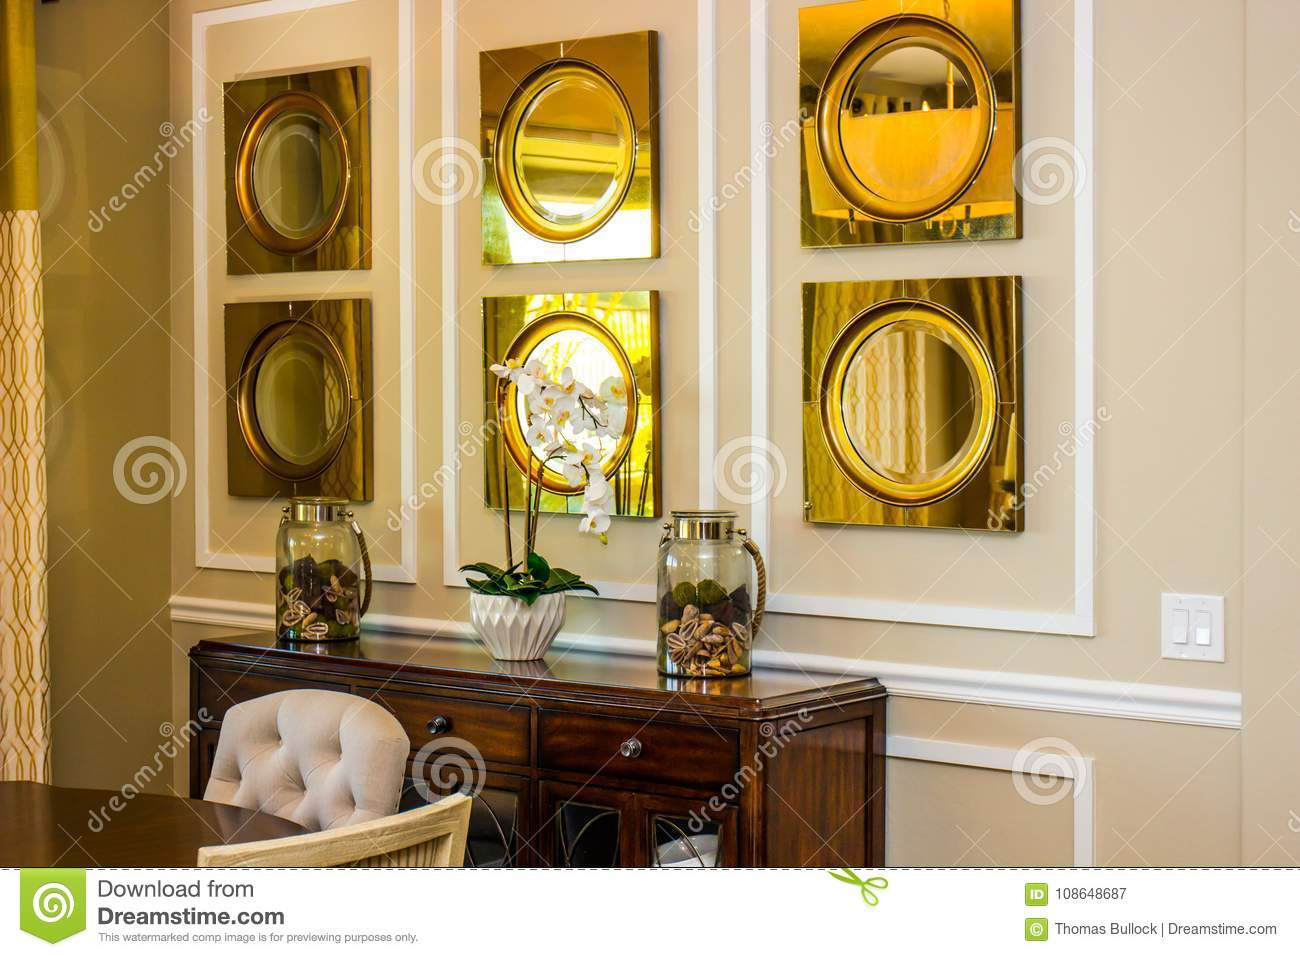 Modern Dining Room Wall & Hutch Stock Image - Image of modern, vase ...